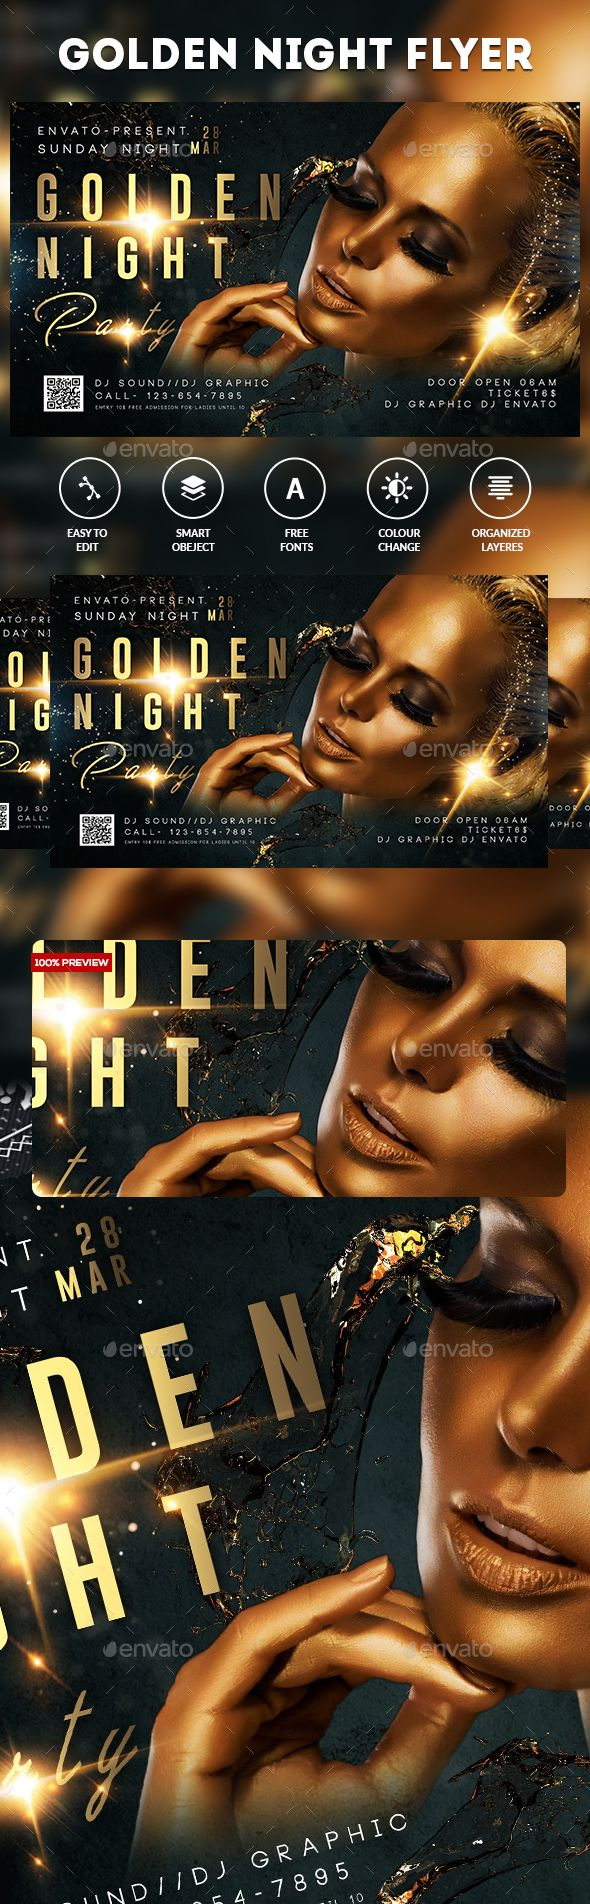 Golden Night Party Flyer — Photoshop PSD #gangway #socialite • Download ➝ https://graphicriver.net/item/golden-night-party-flyer/19605797?ref=pxcr